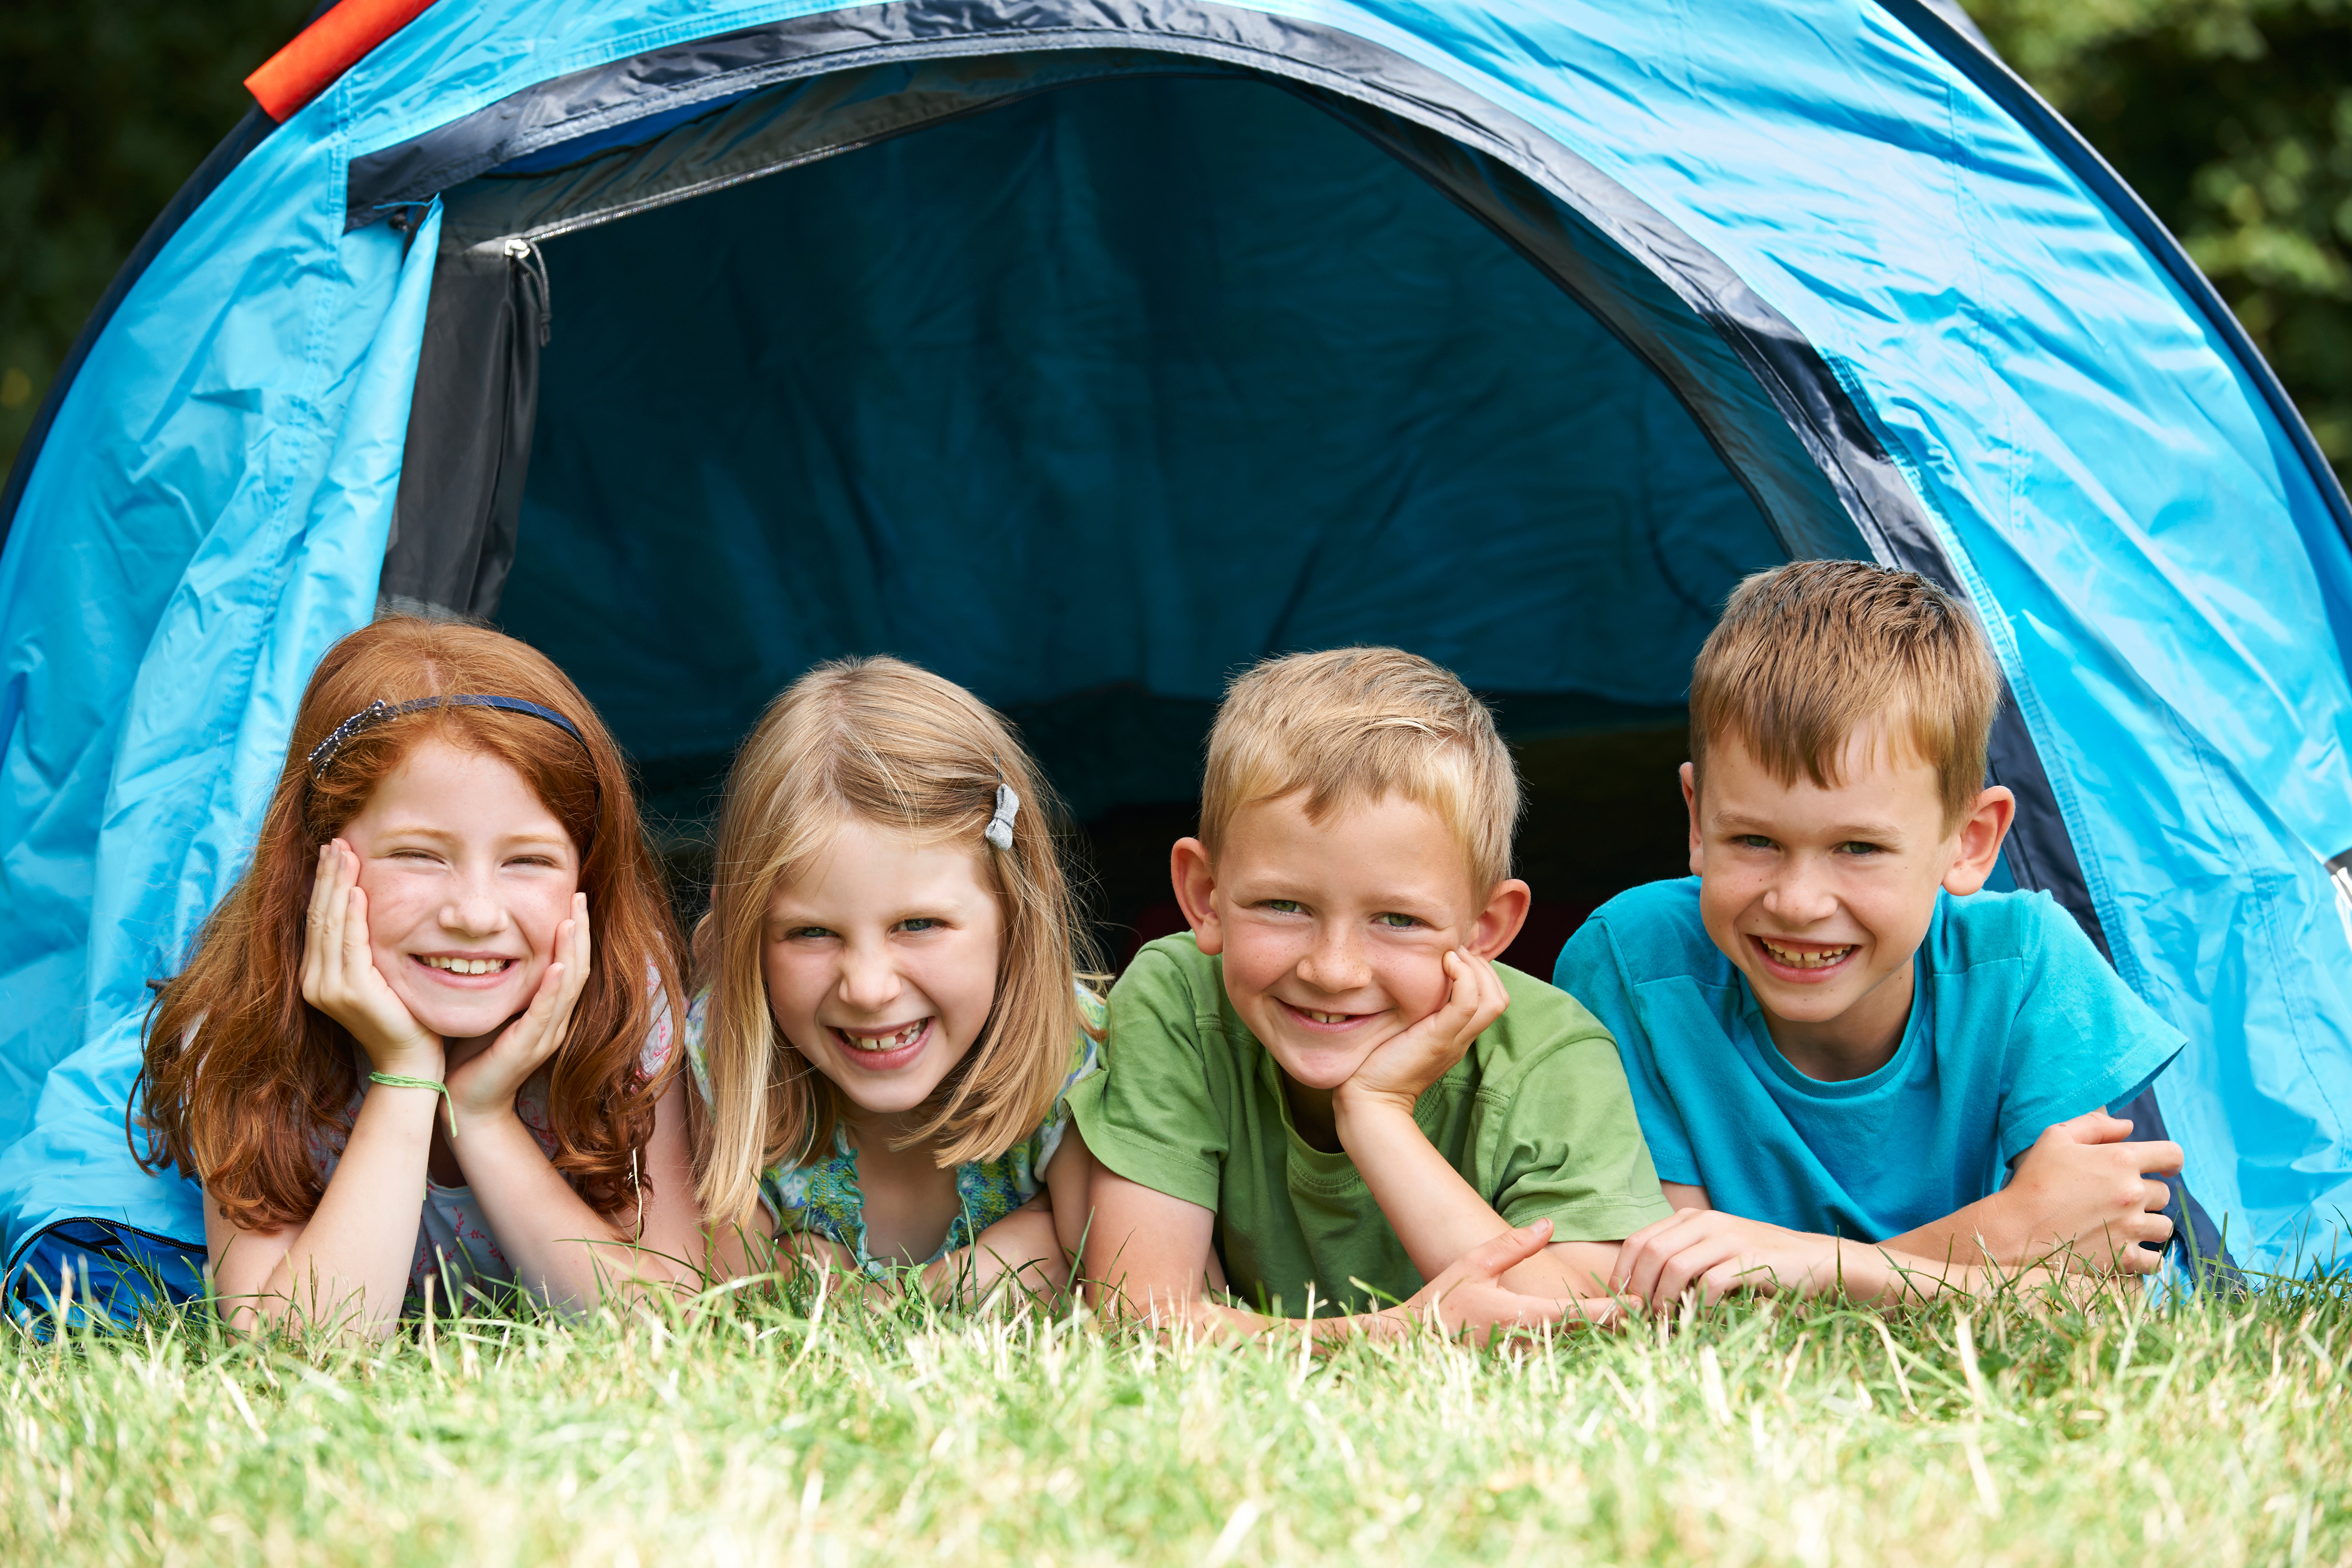 Group Of Children On Camping Trip Together